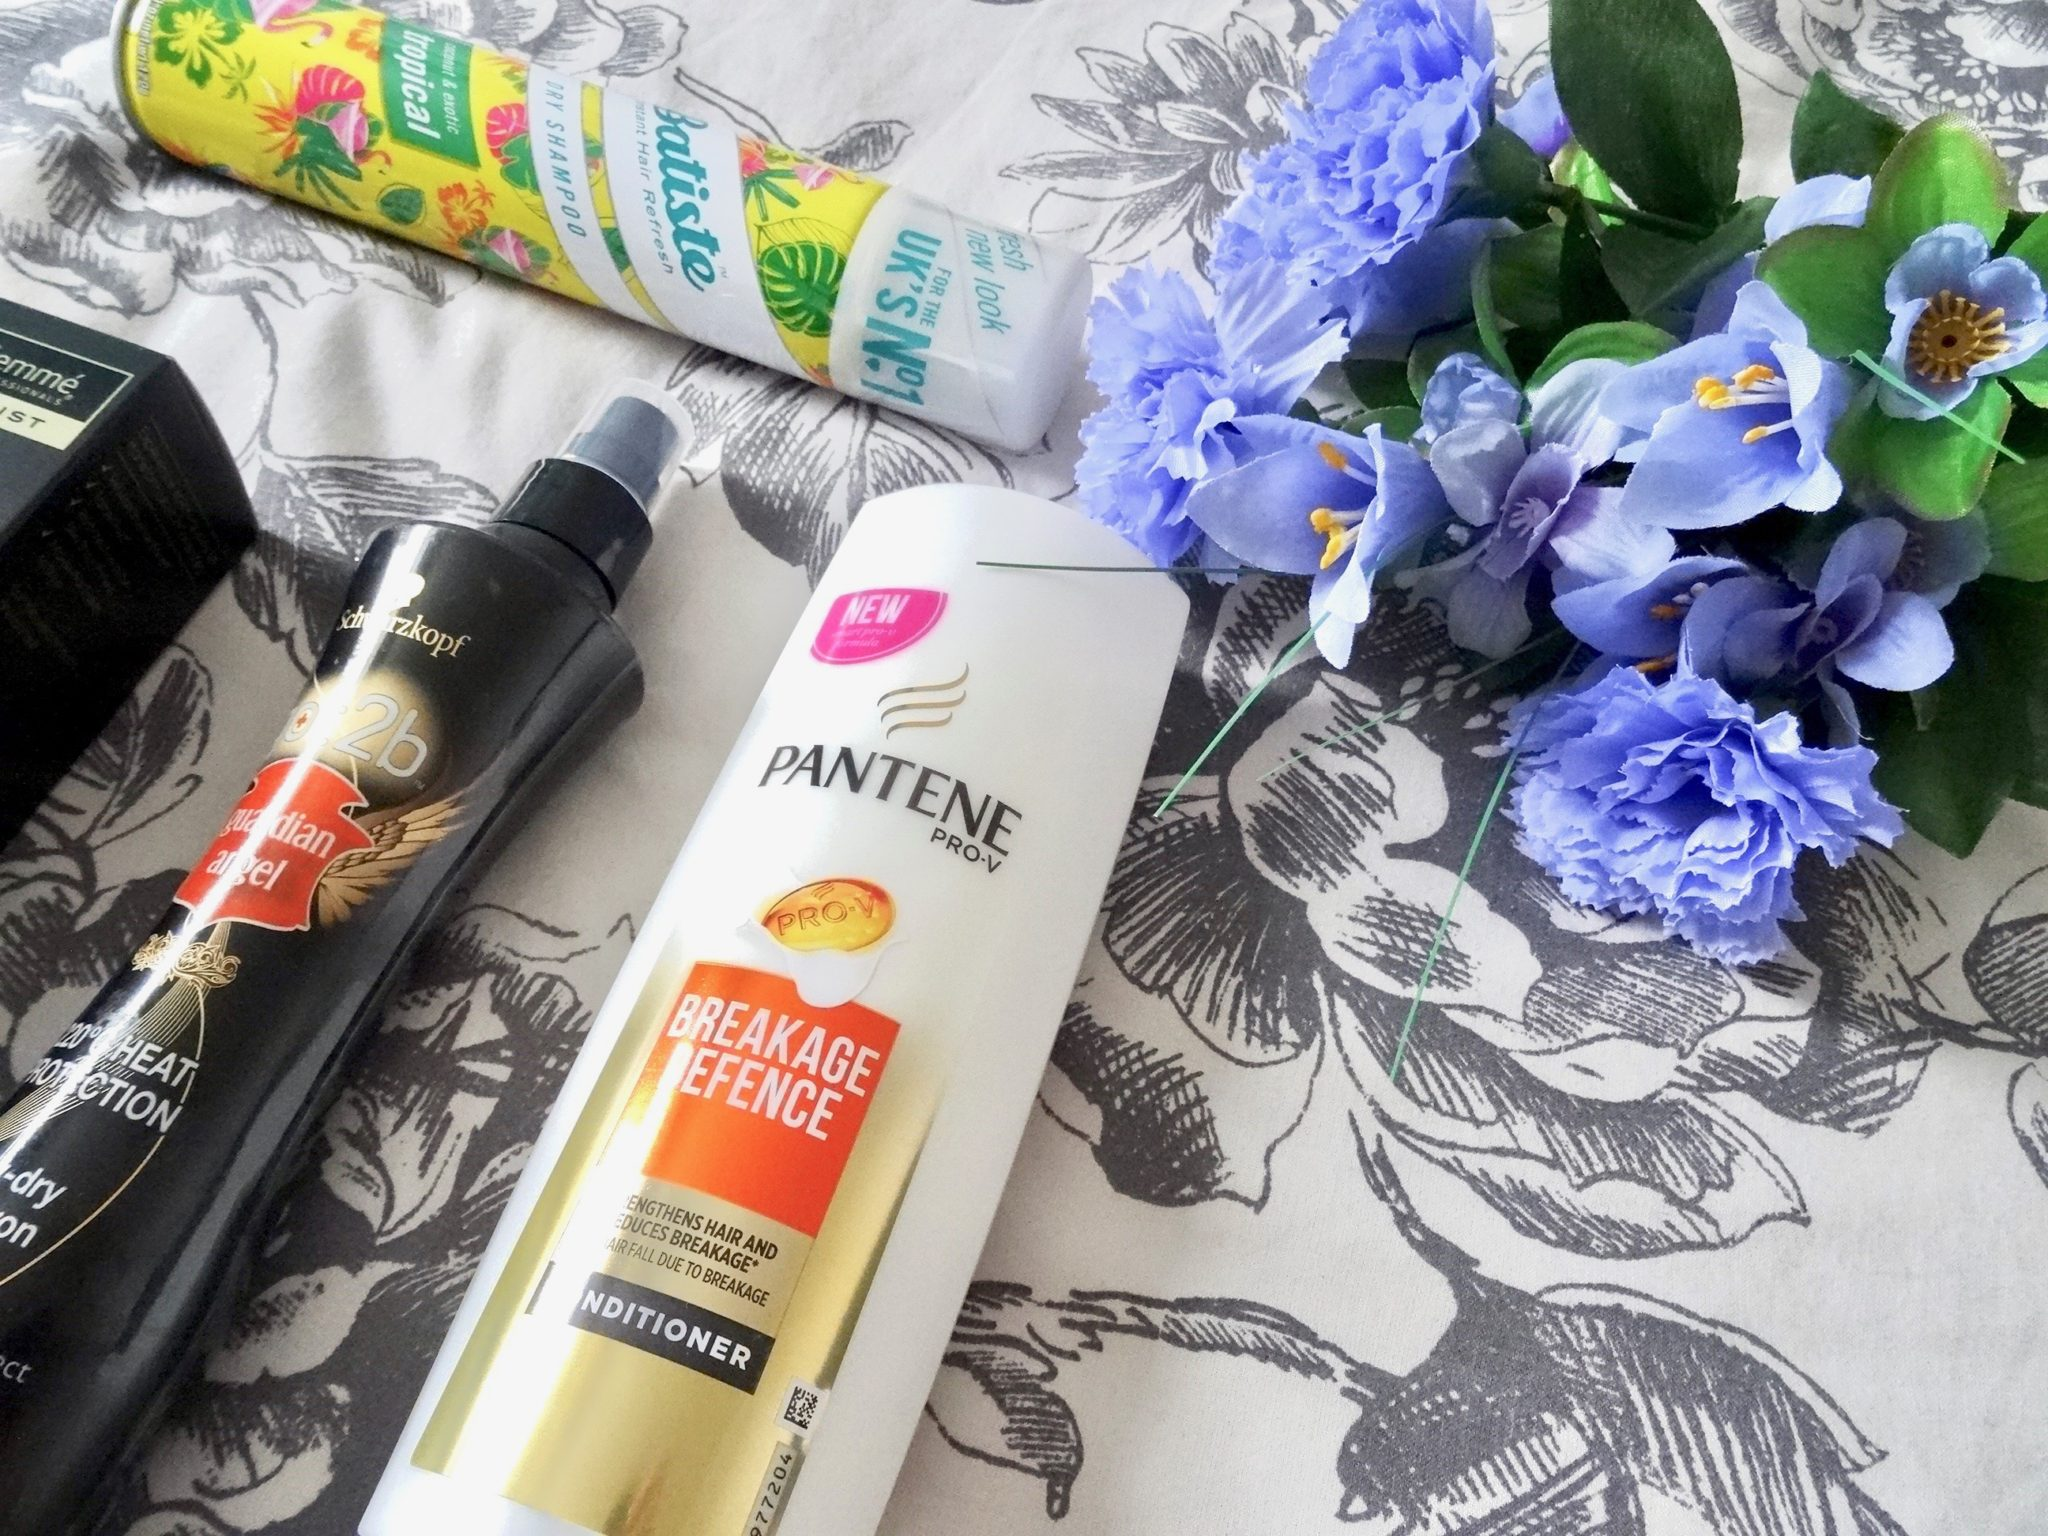 Pantene Breakage Defence Conditioner - Batiste Tropical Dry Shampoo - Schwarzkopf got2b Guardian Angel